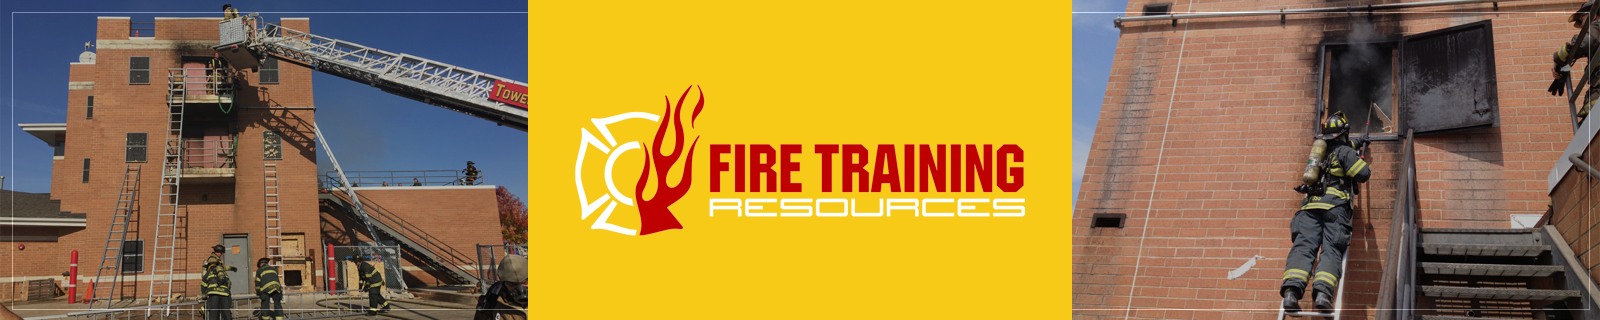 Machinery Rescue Operations Course - Fort Walton Beach, FL